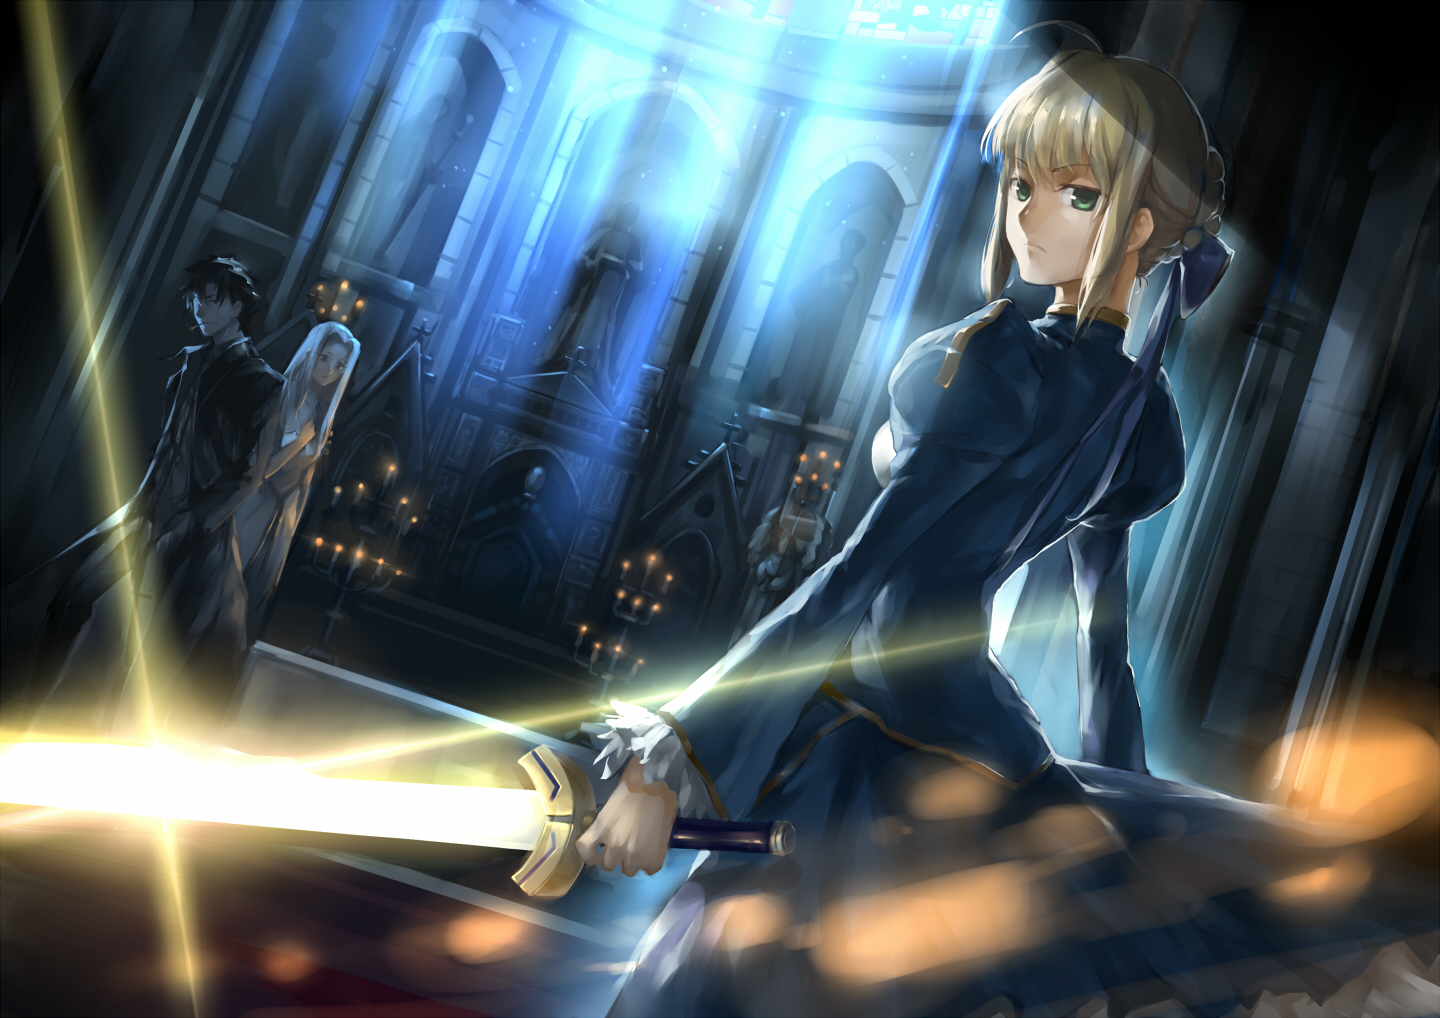 artoria_pendragon_(all) black_eyes black_hair blonde_hair dress emiya_kiritsugu fate_(series) fate/stay_night fate/zero green_eyes irisviel_von_einzbern red_eyes saber sword vlan weapon white_hair